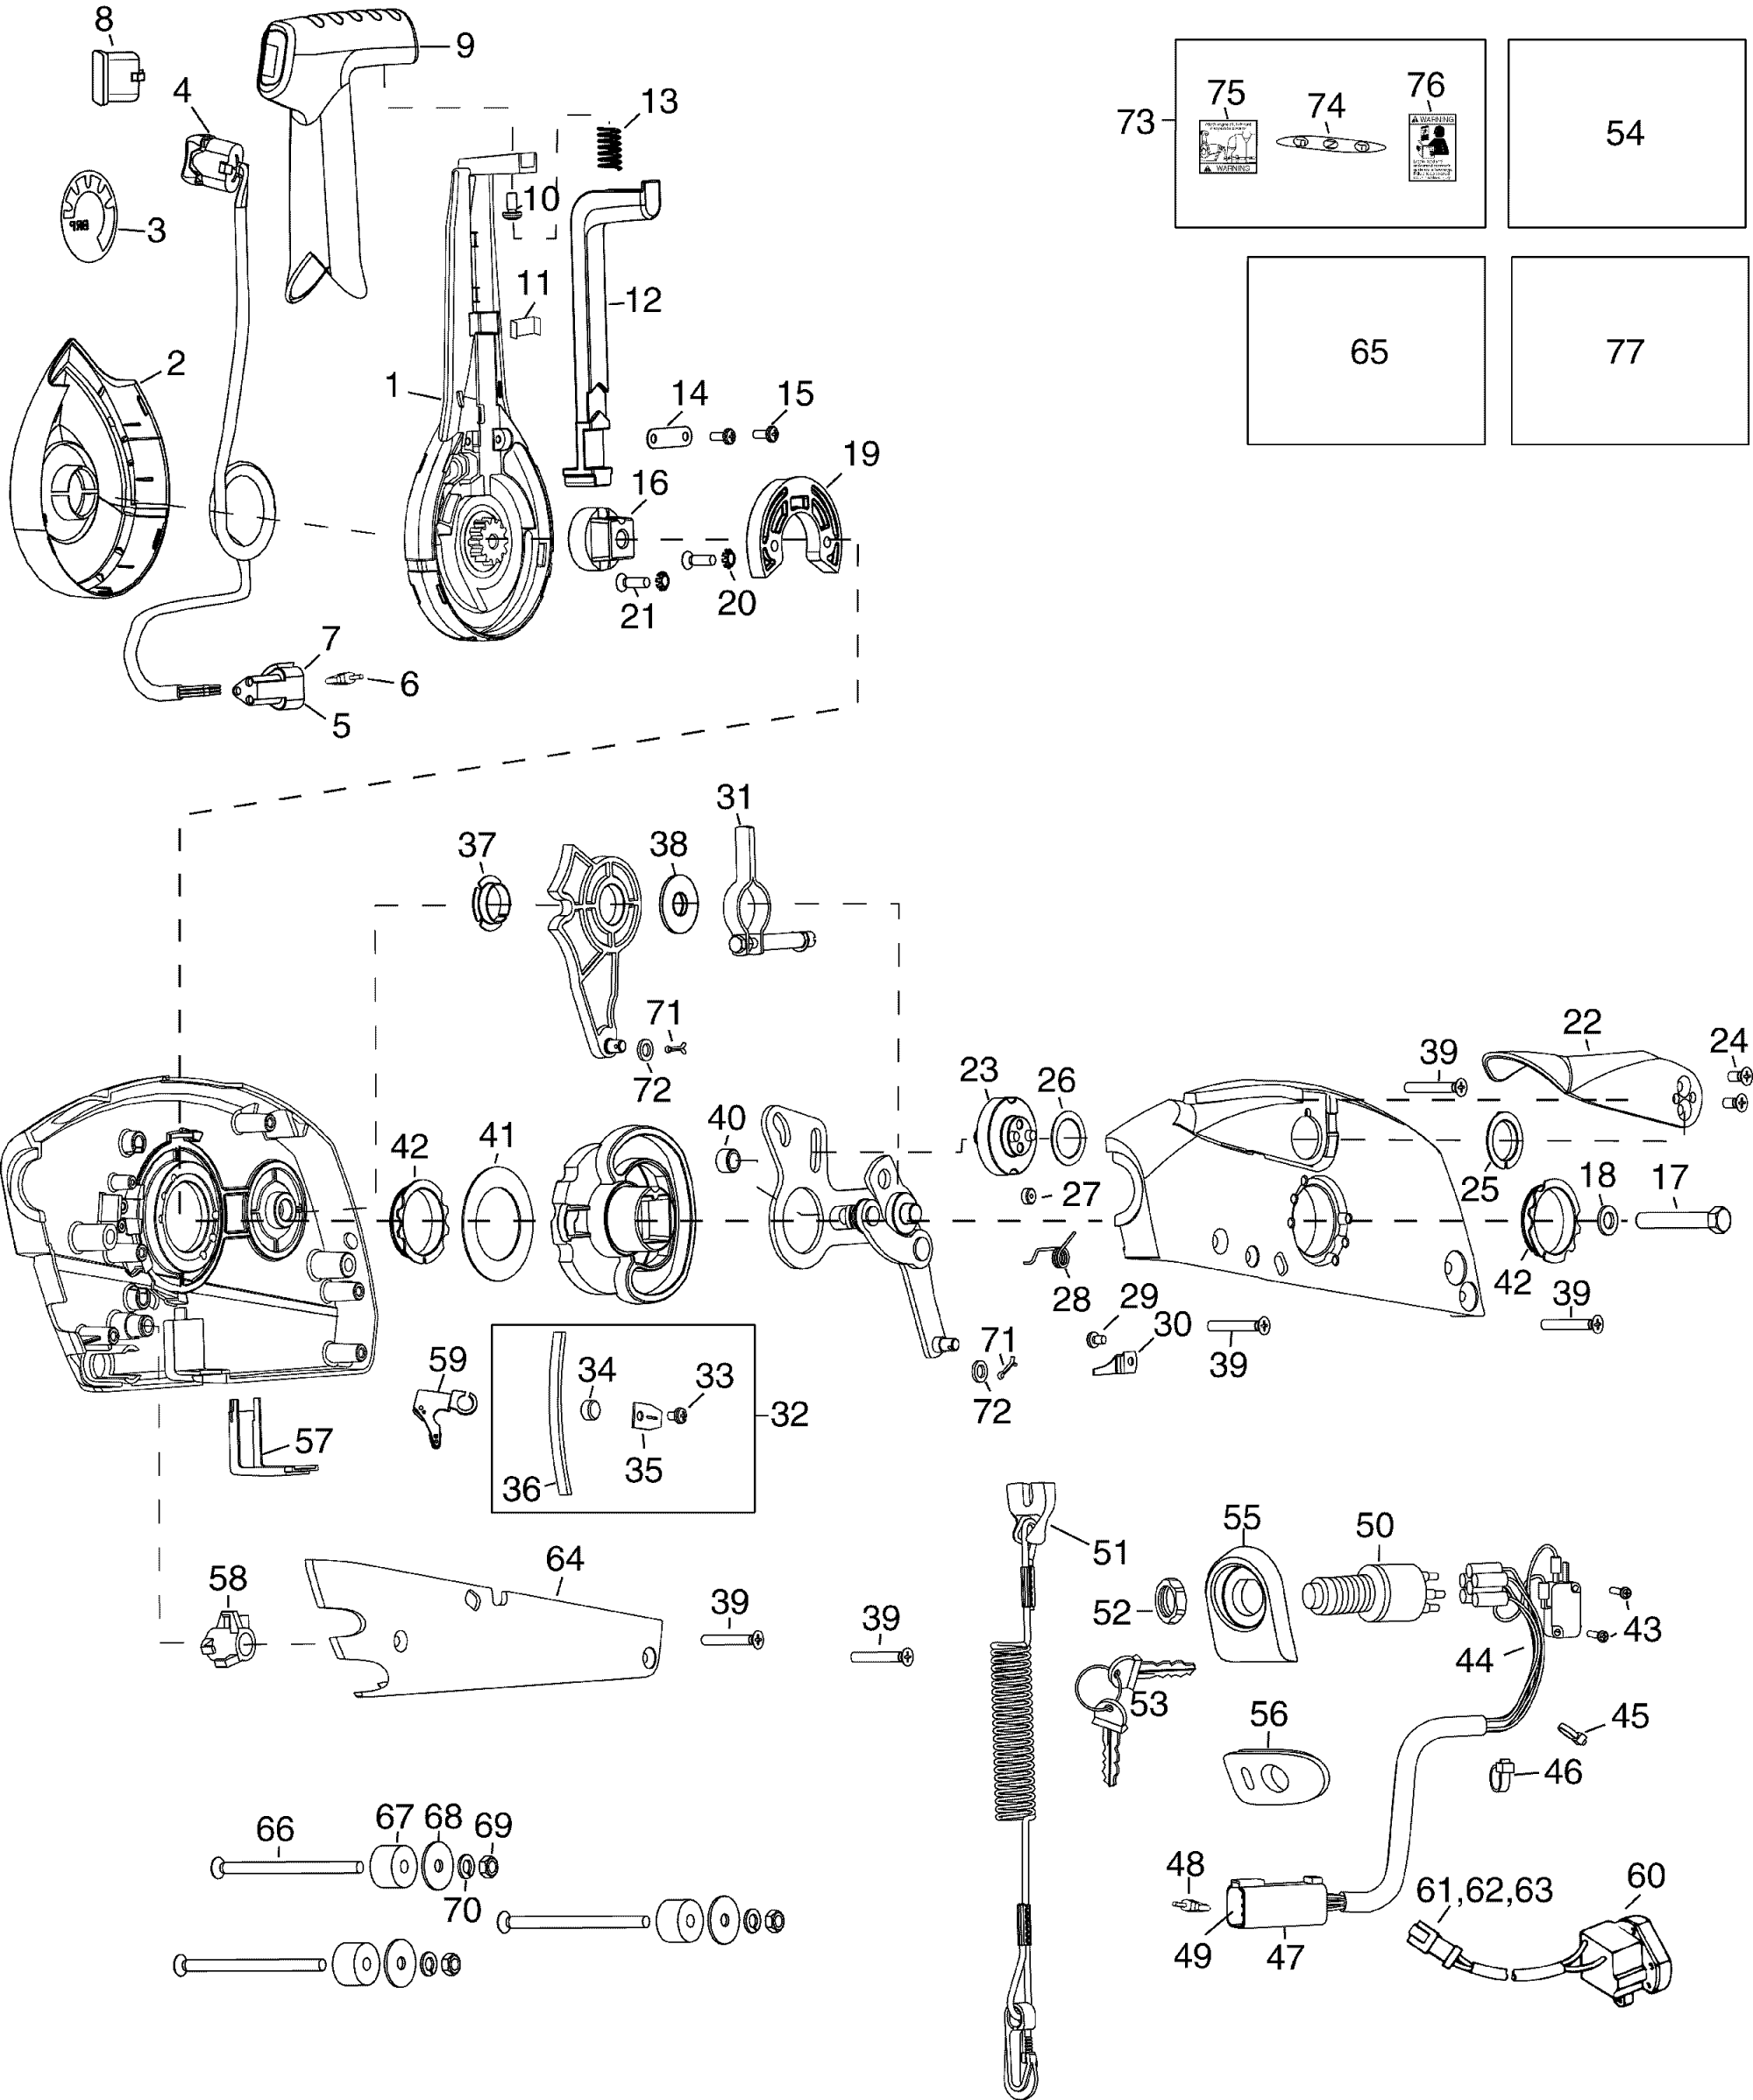 hight resolution of johnson outboard control box wiring schematic